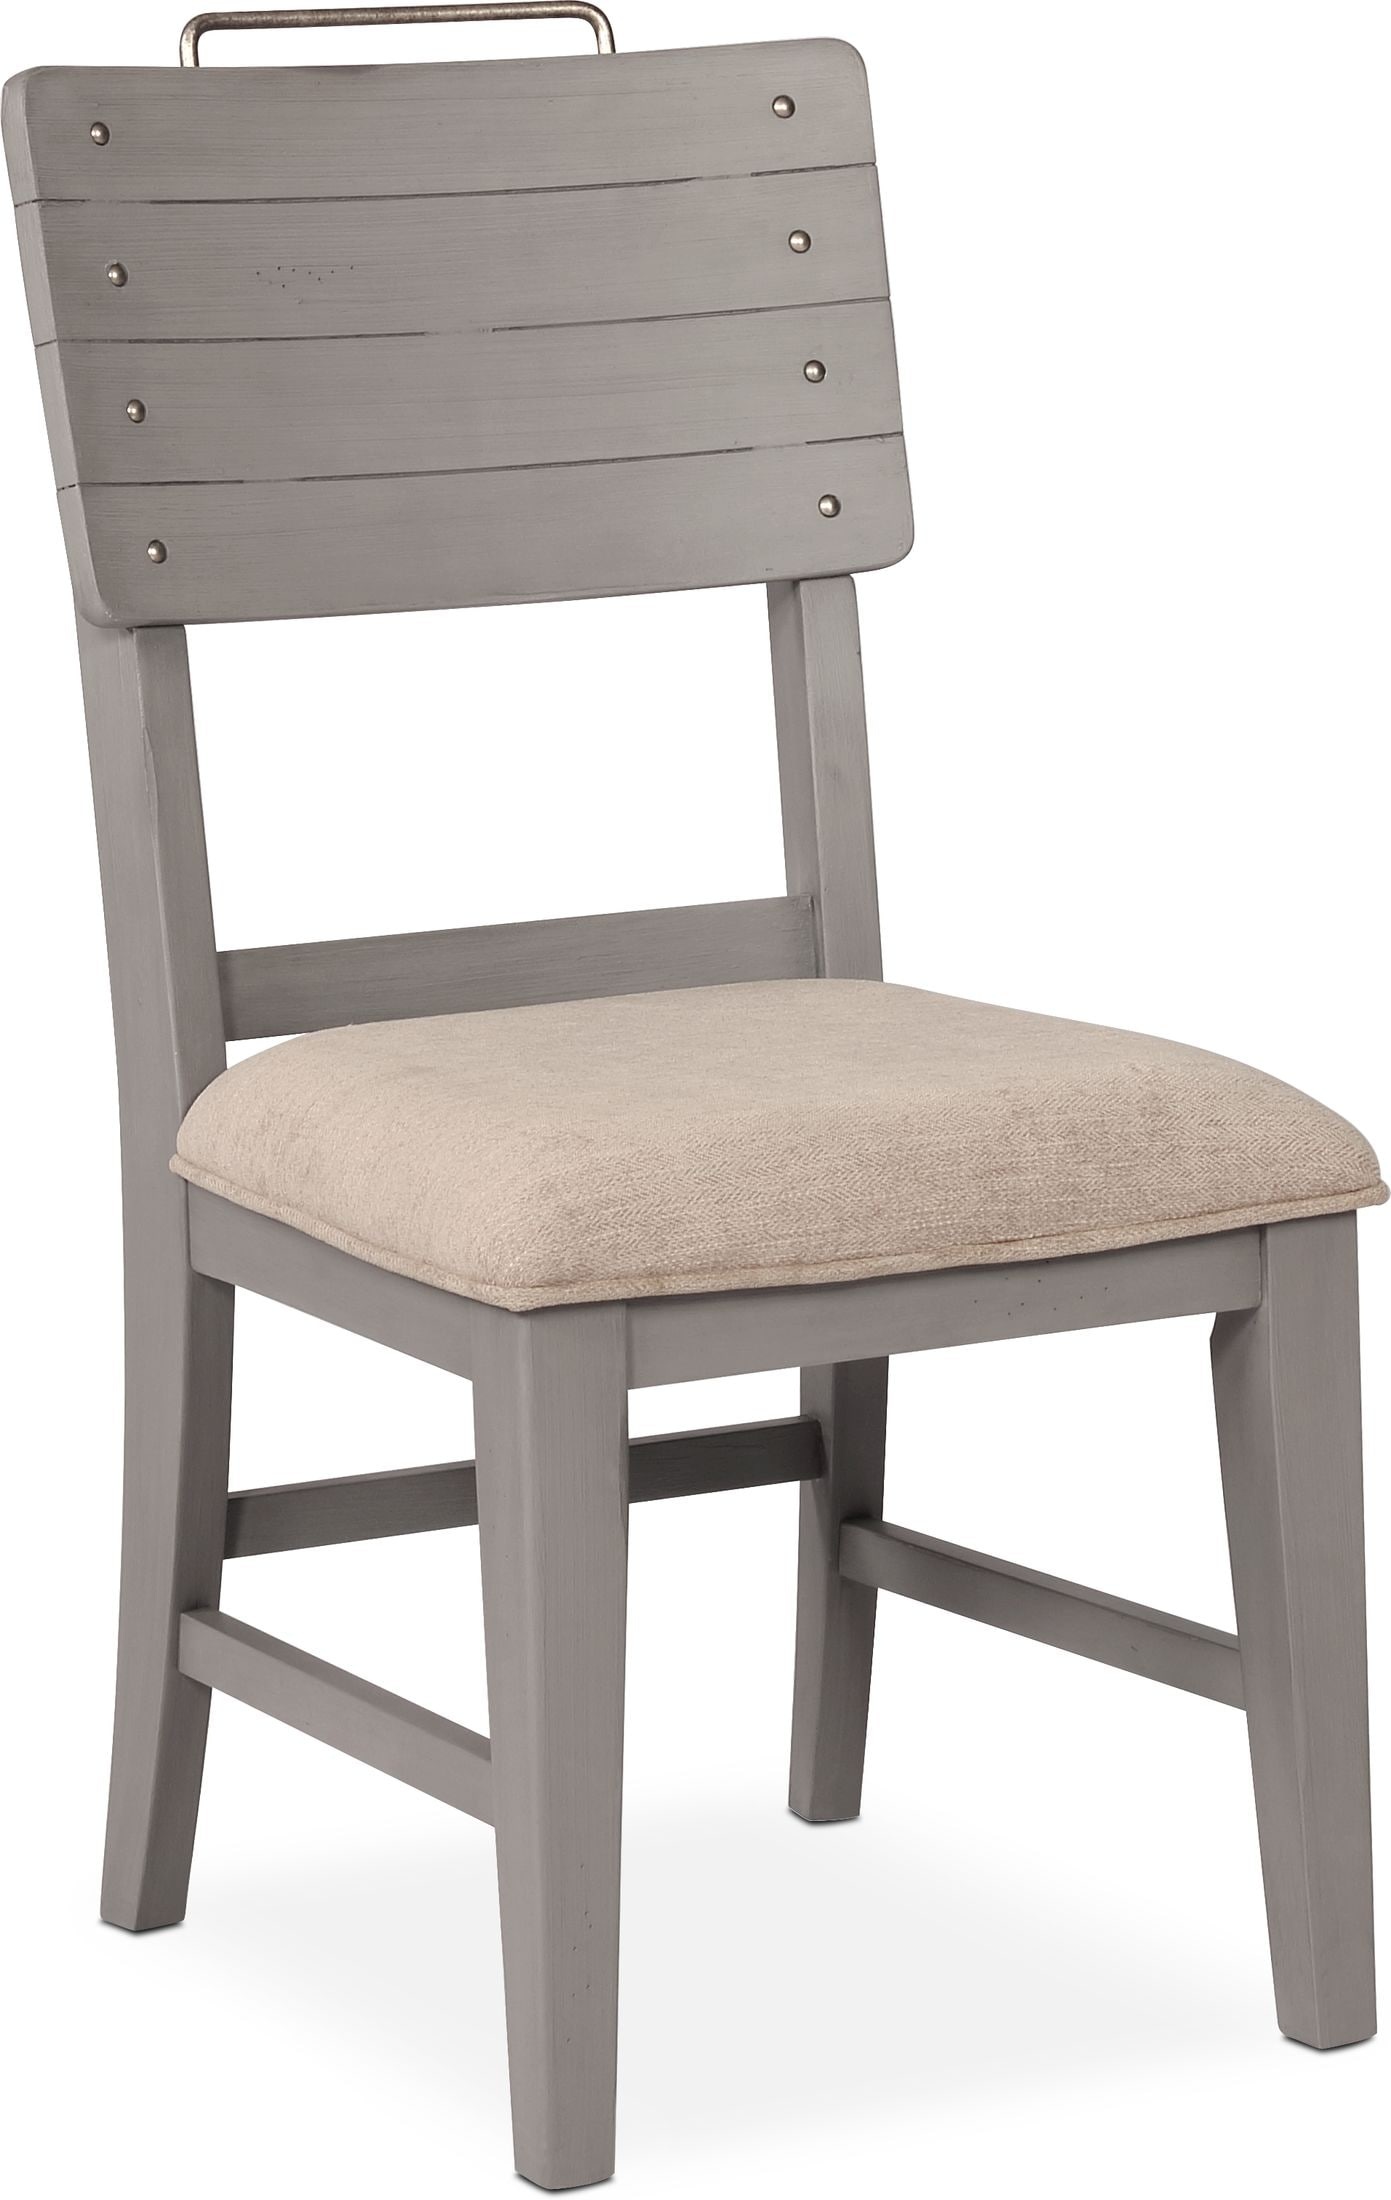 Dining Room Furniture - New Haven Shiplap Dining Chair